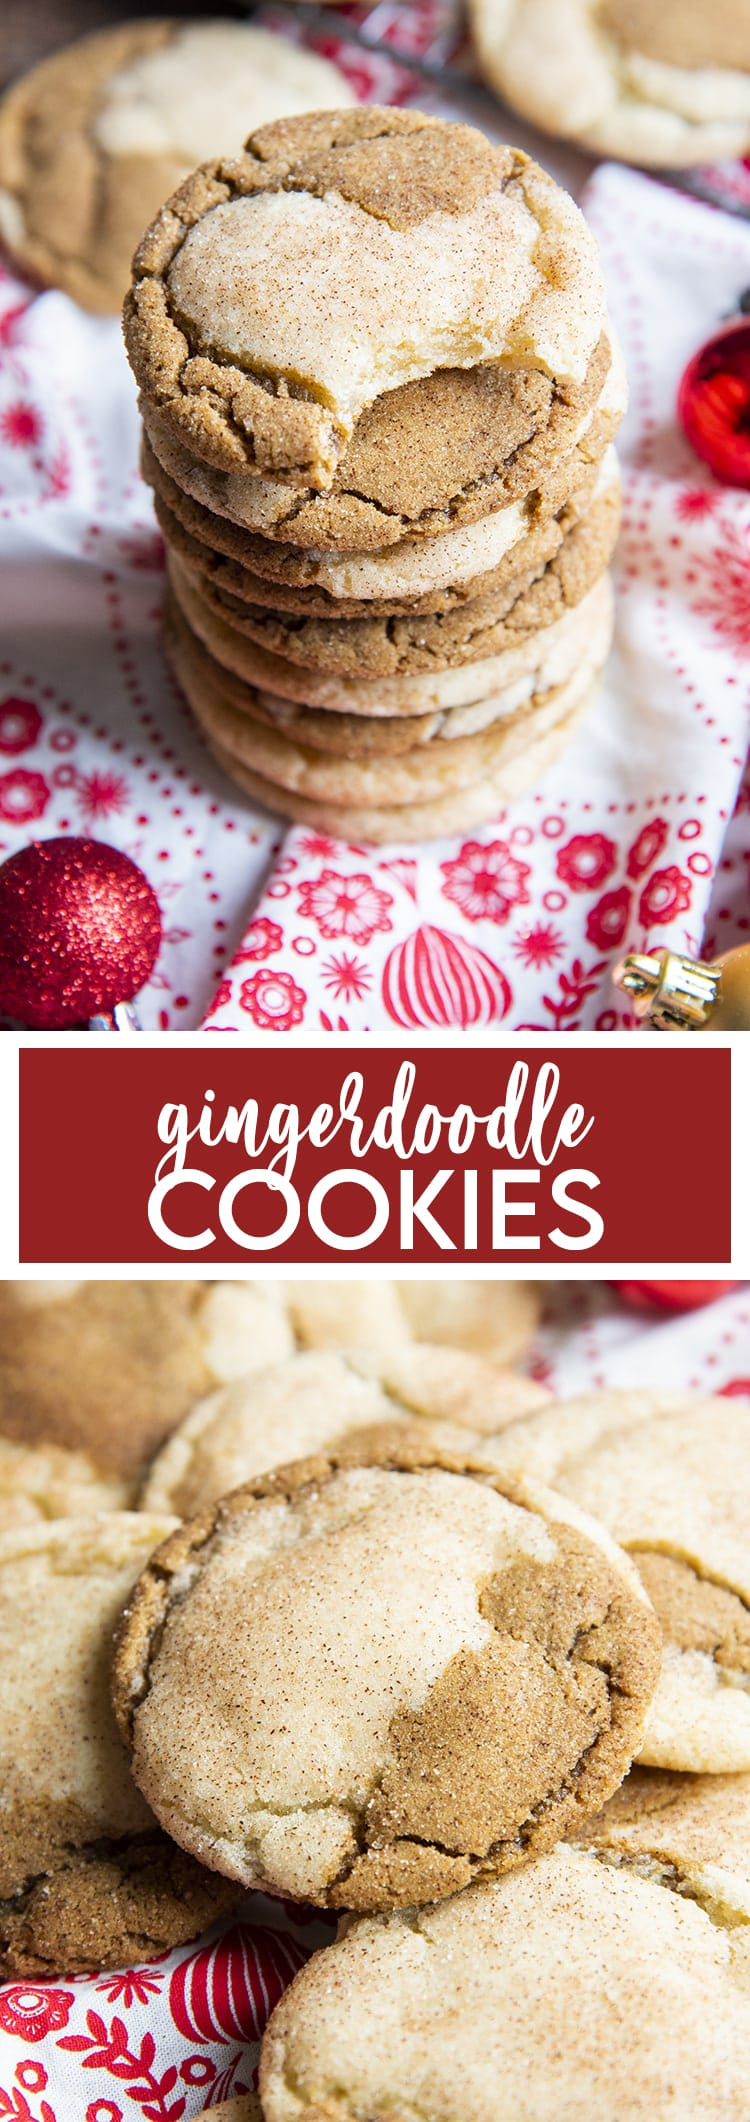 A collage of two photos of gingerdoodle cookies. The first is a stack of cookies, with the top one has a bite taken out. Then a text overlay for pinterest. Then a pile of cookies.